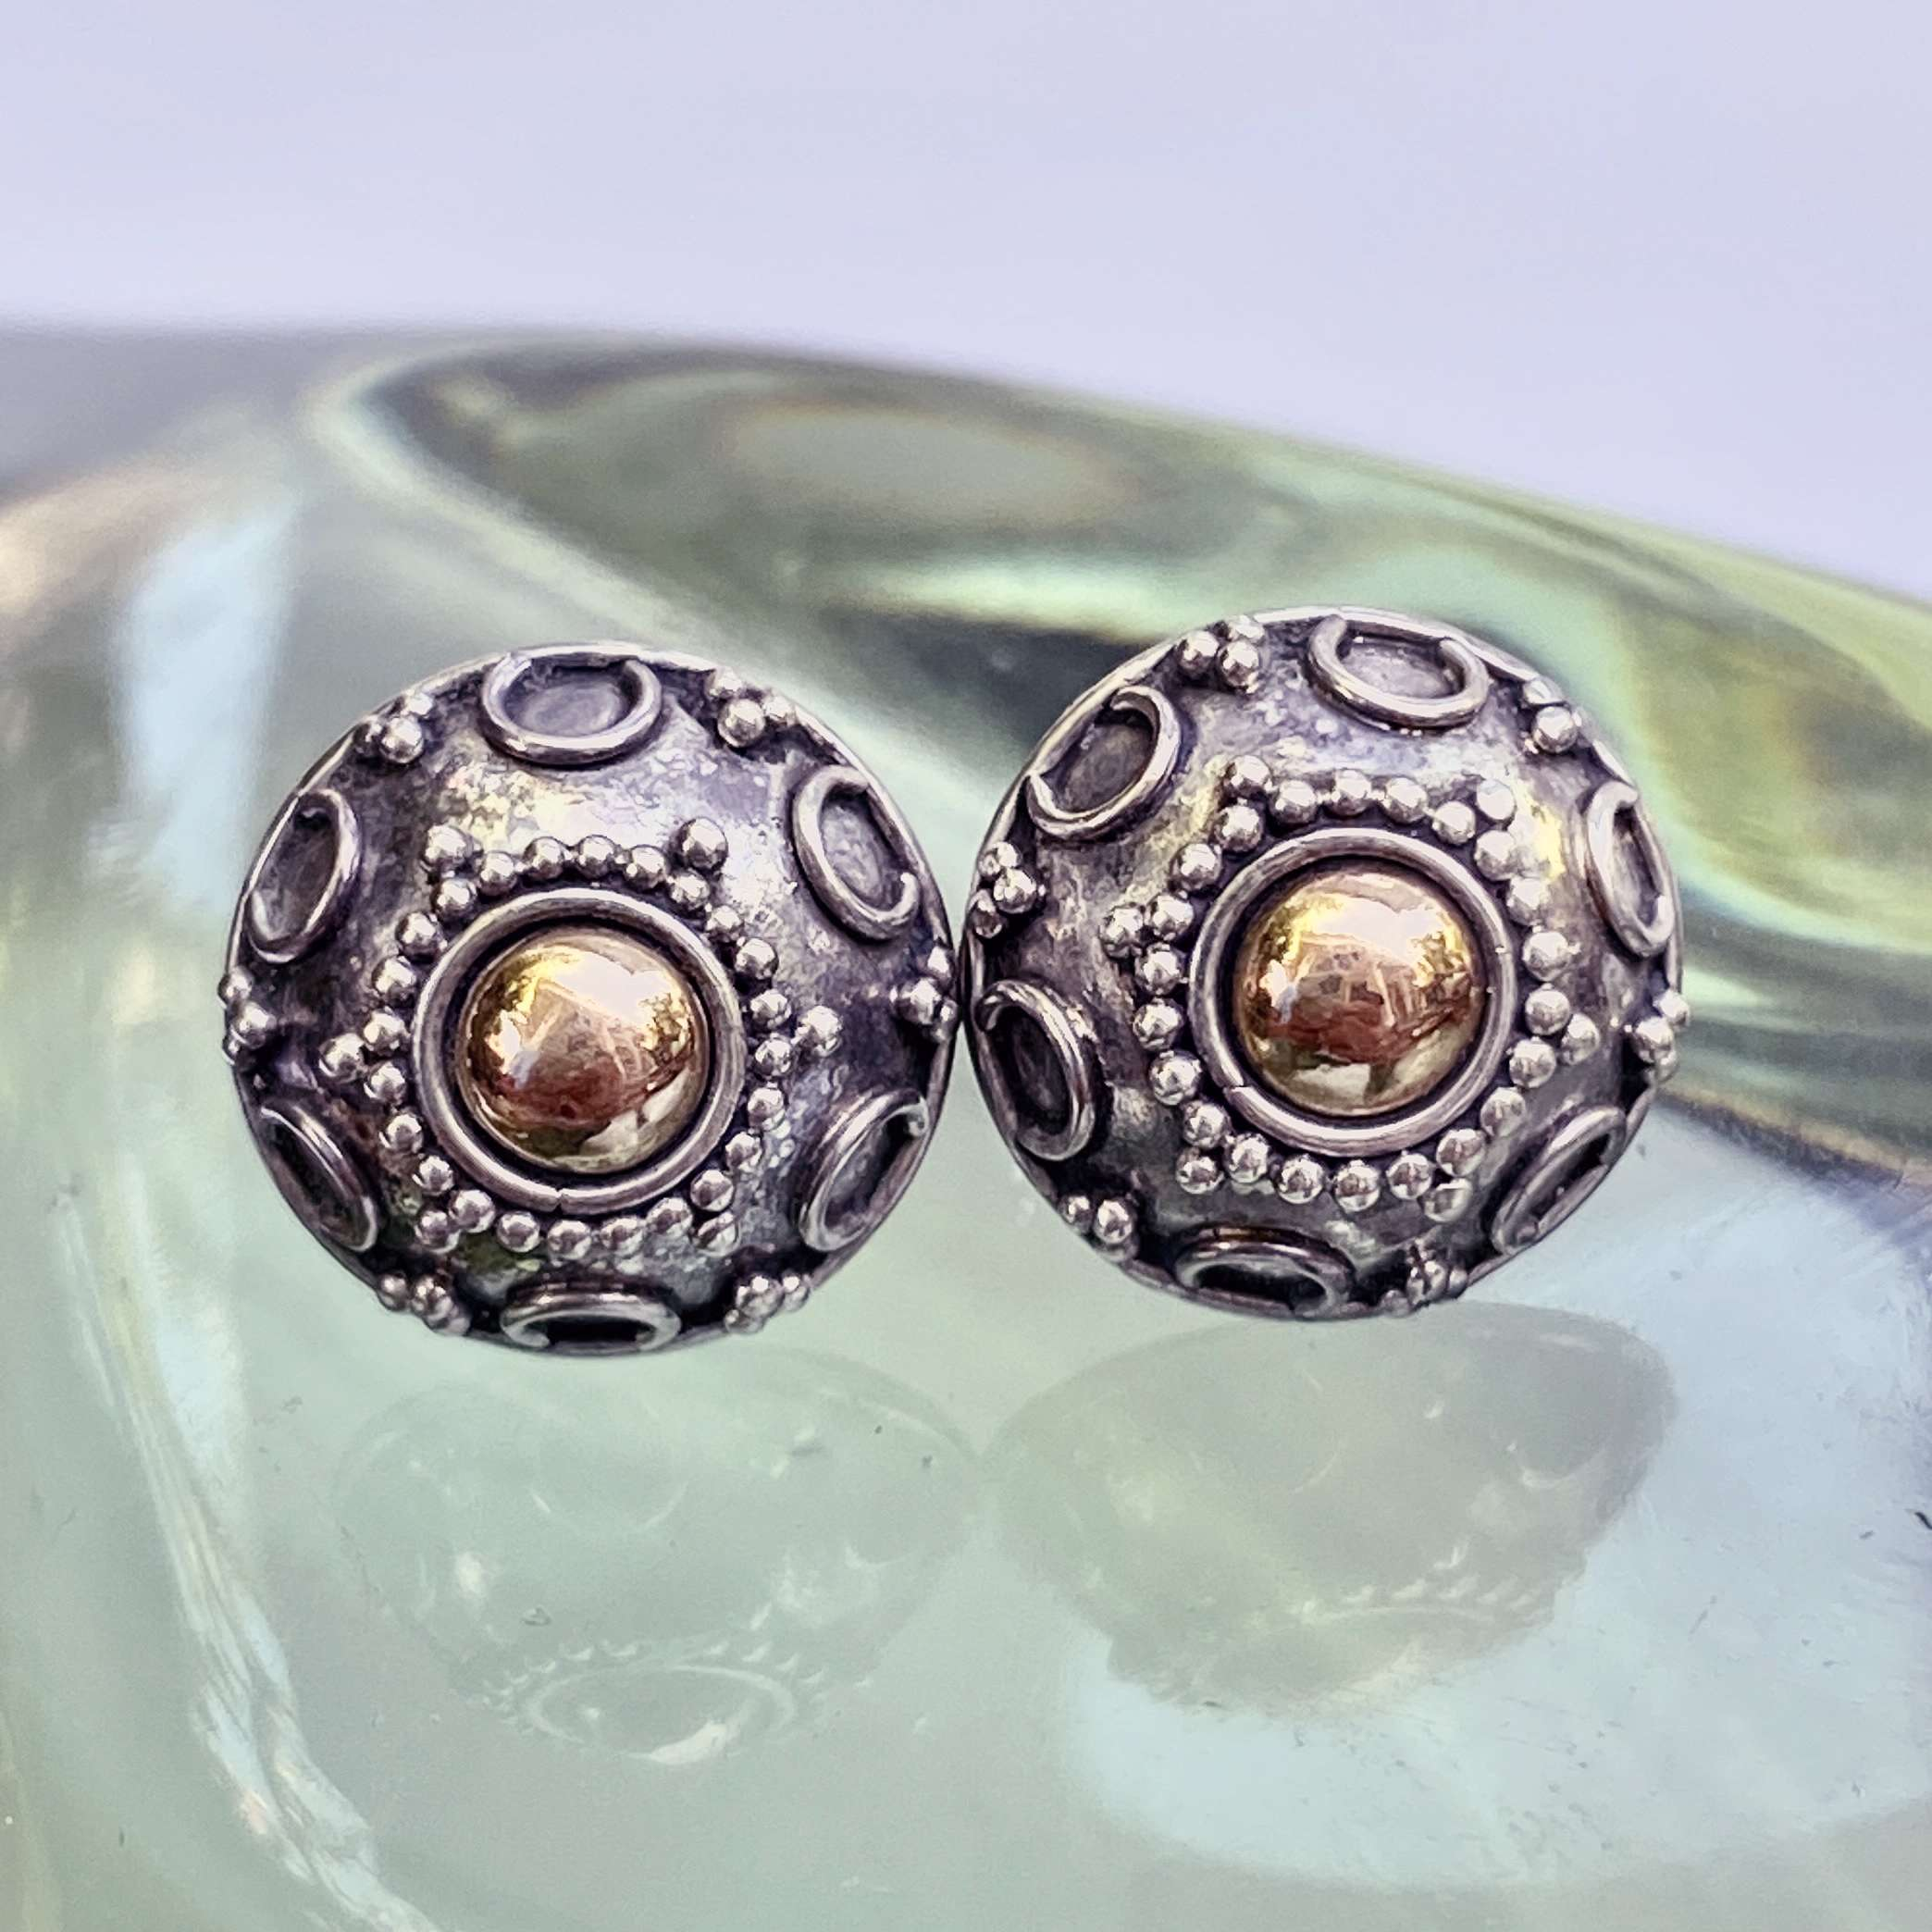 (HANDMADE 925 BALI SILVER EARRING WITH 18KT GOLD ACCENT)